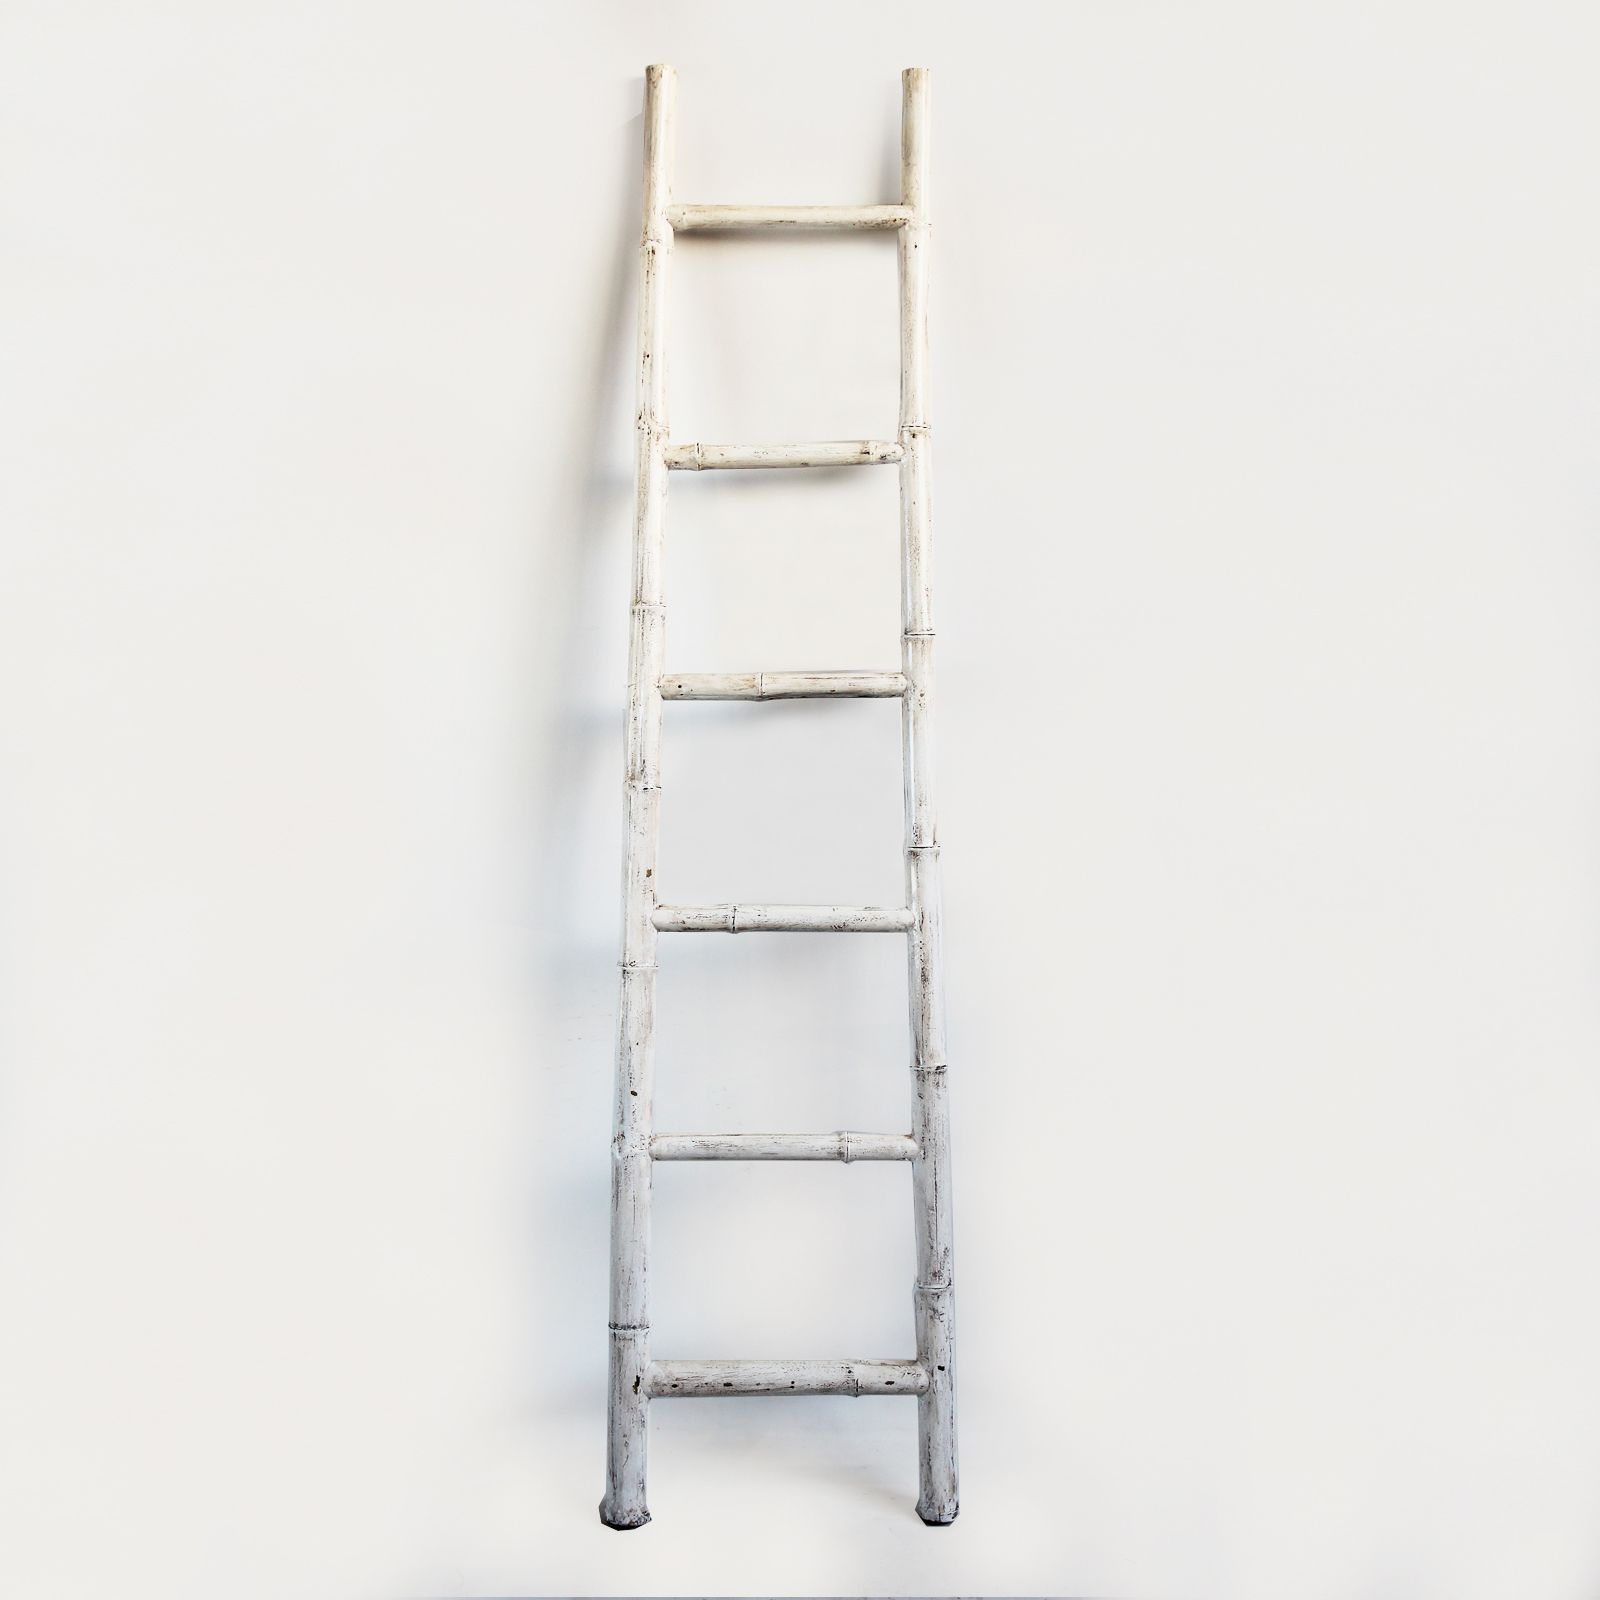 New At MIX! Bamboo Ladder. White Painted Finish. Ladder